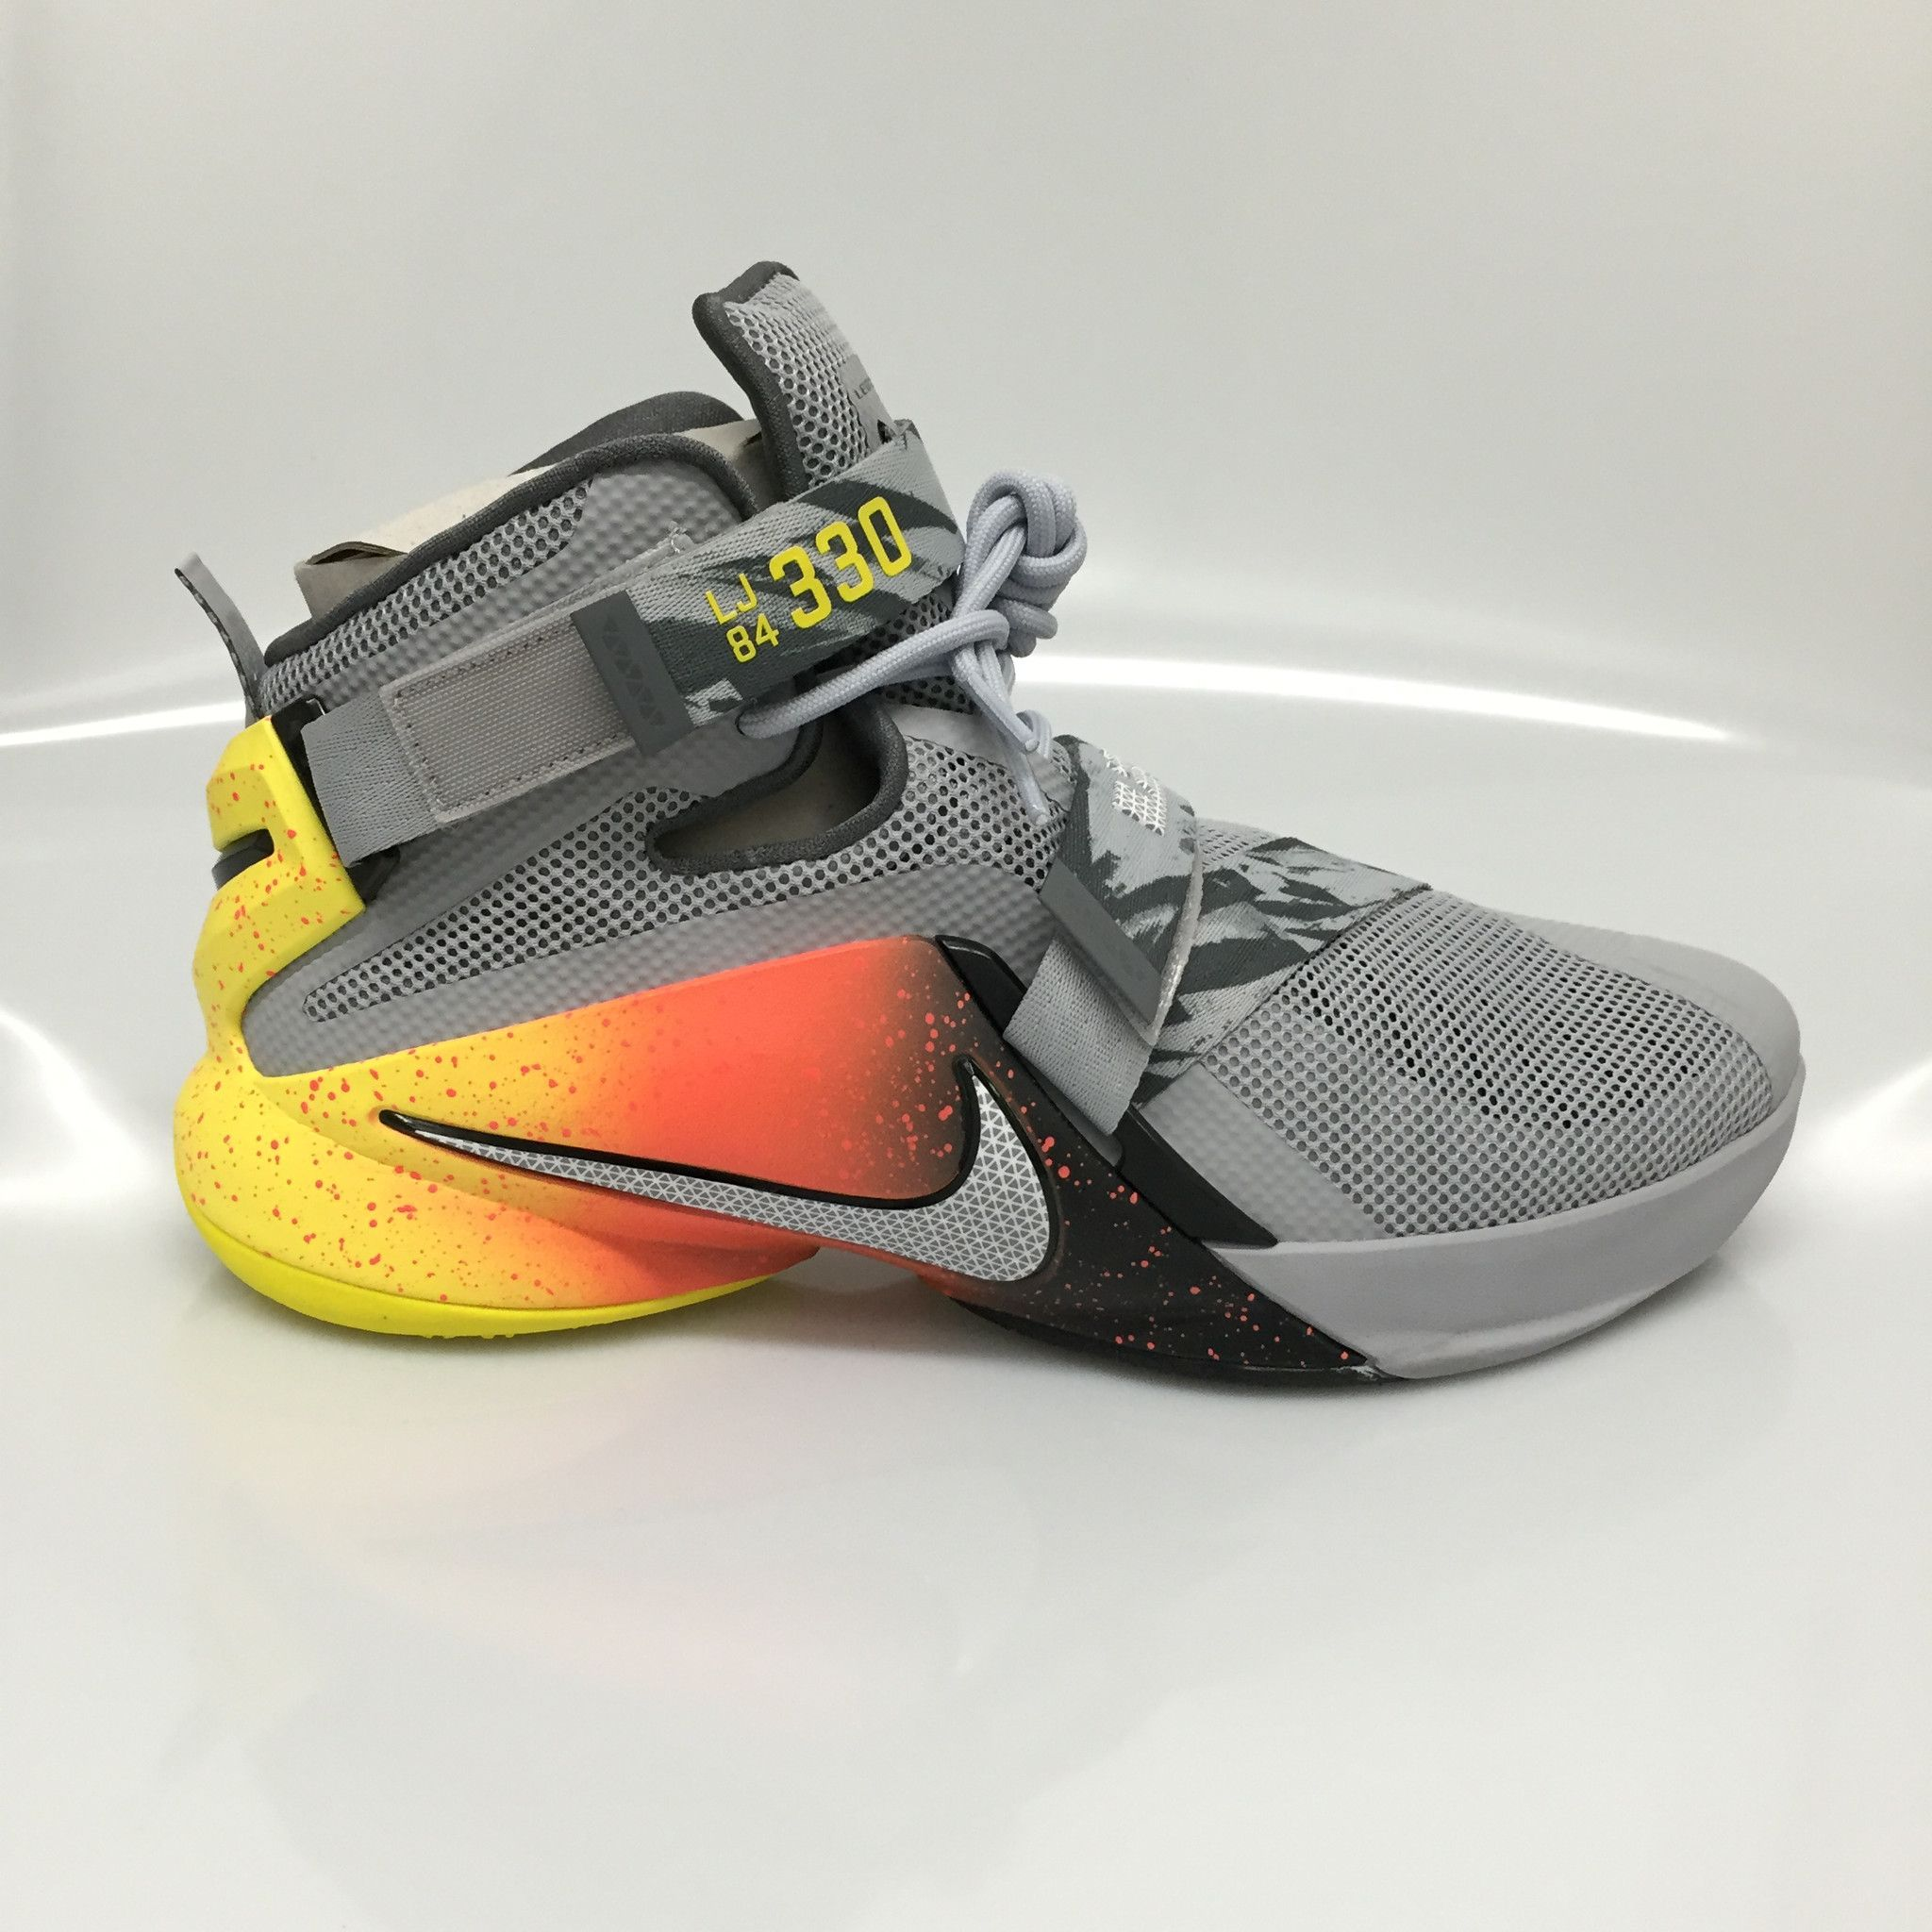 sale retailer a092d edf41 CONDITION: Brand New/Promo Lebron Soldier 1 of 25 STYLE ...